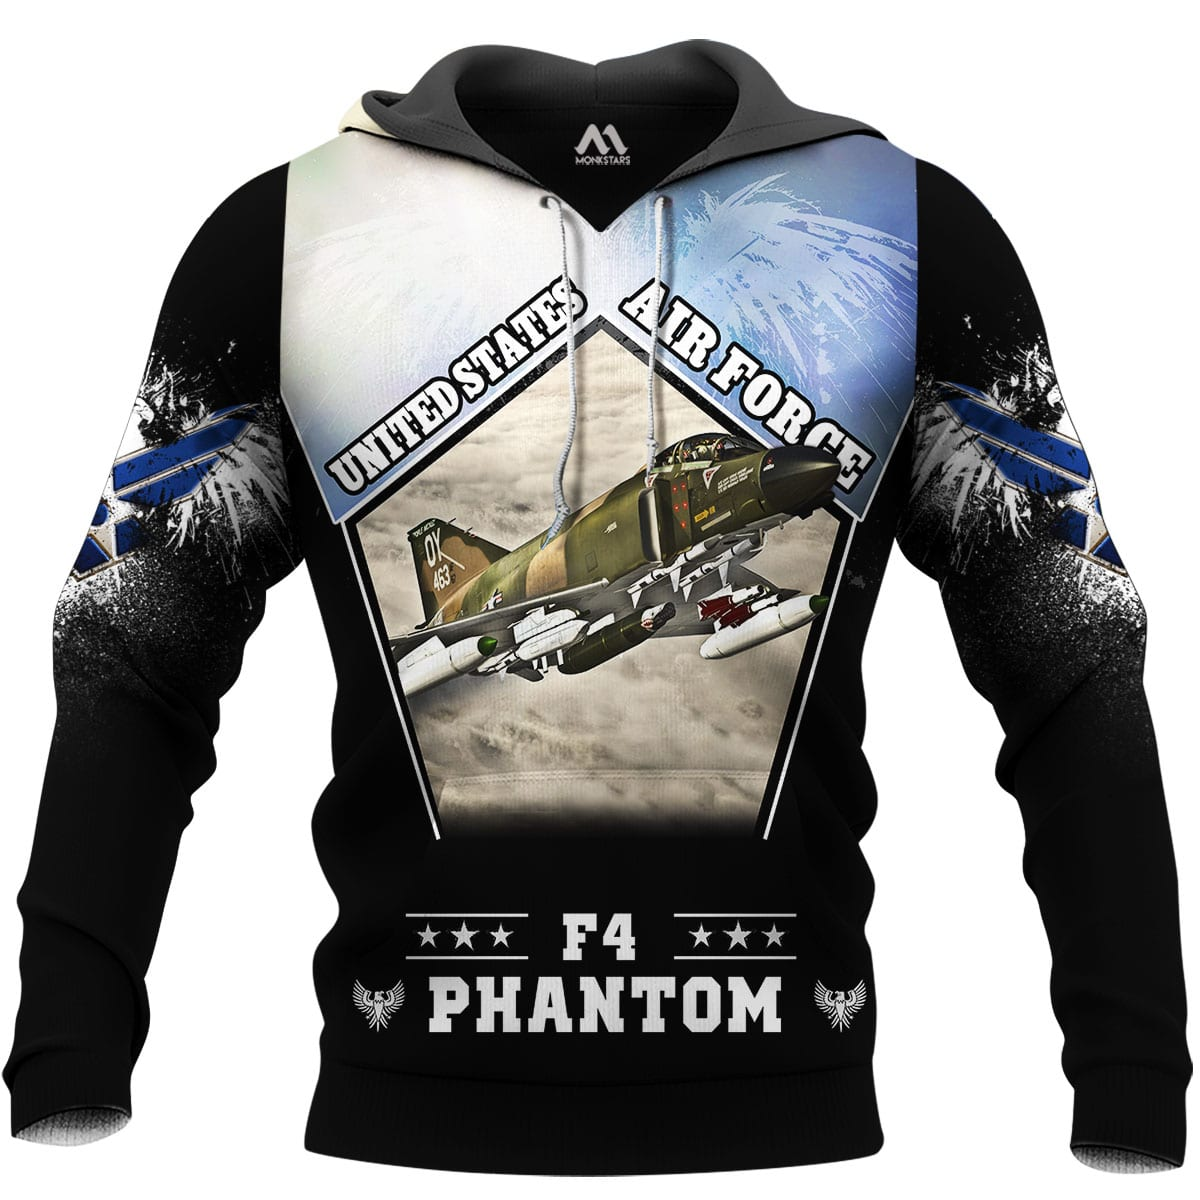 F4 Phantom 3D All Over Printed Shirts for Men and Women 1